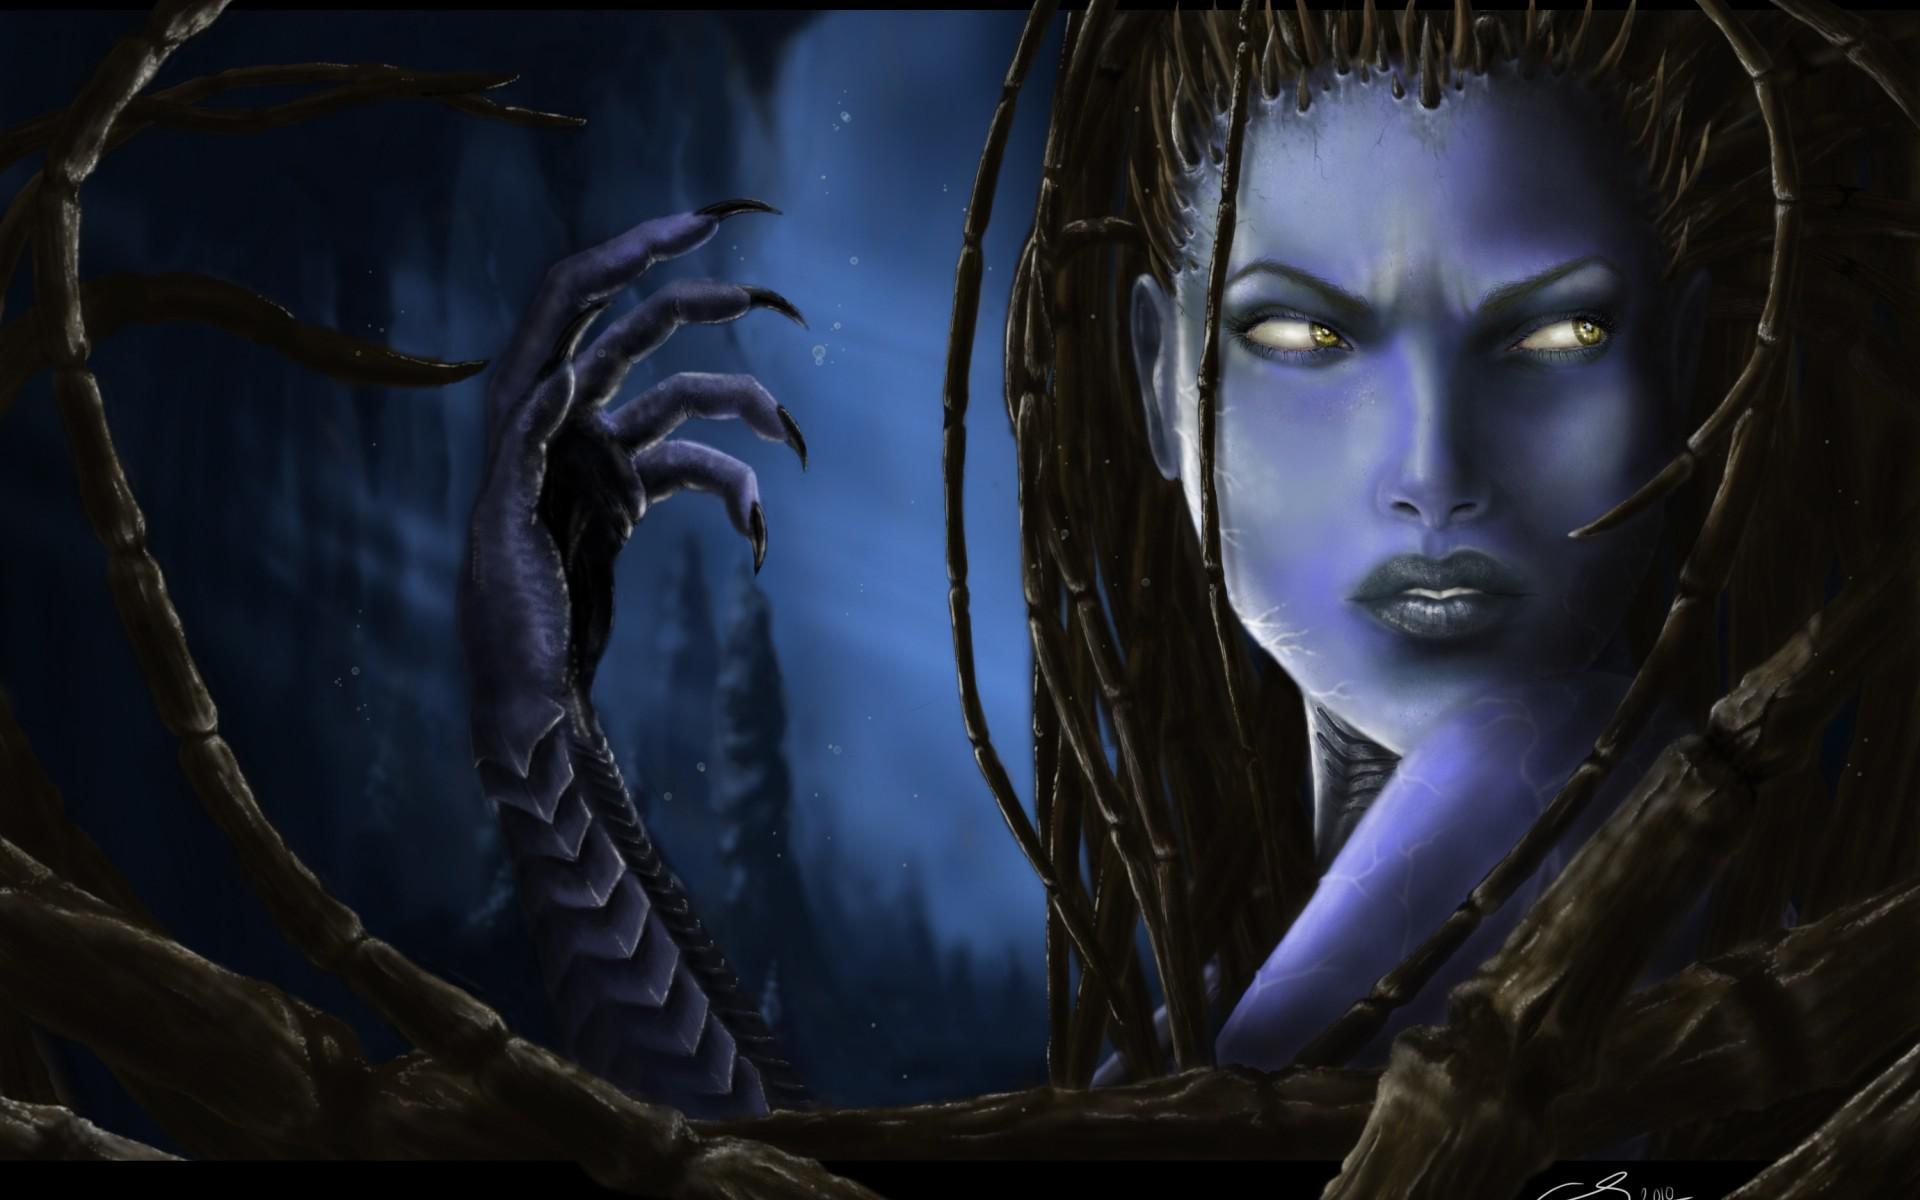 Kerrigan StarCraft 2 dark fantasy women female face eyes witch sci-fi cyborg